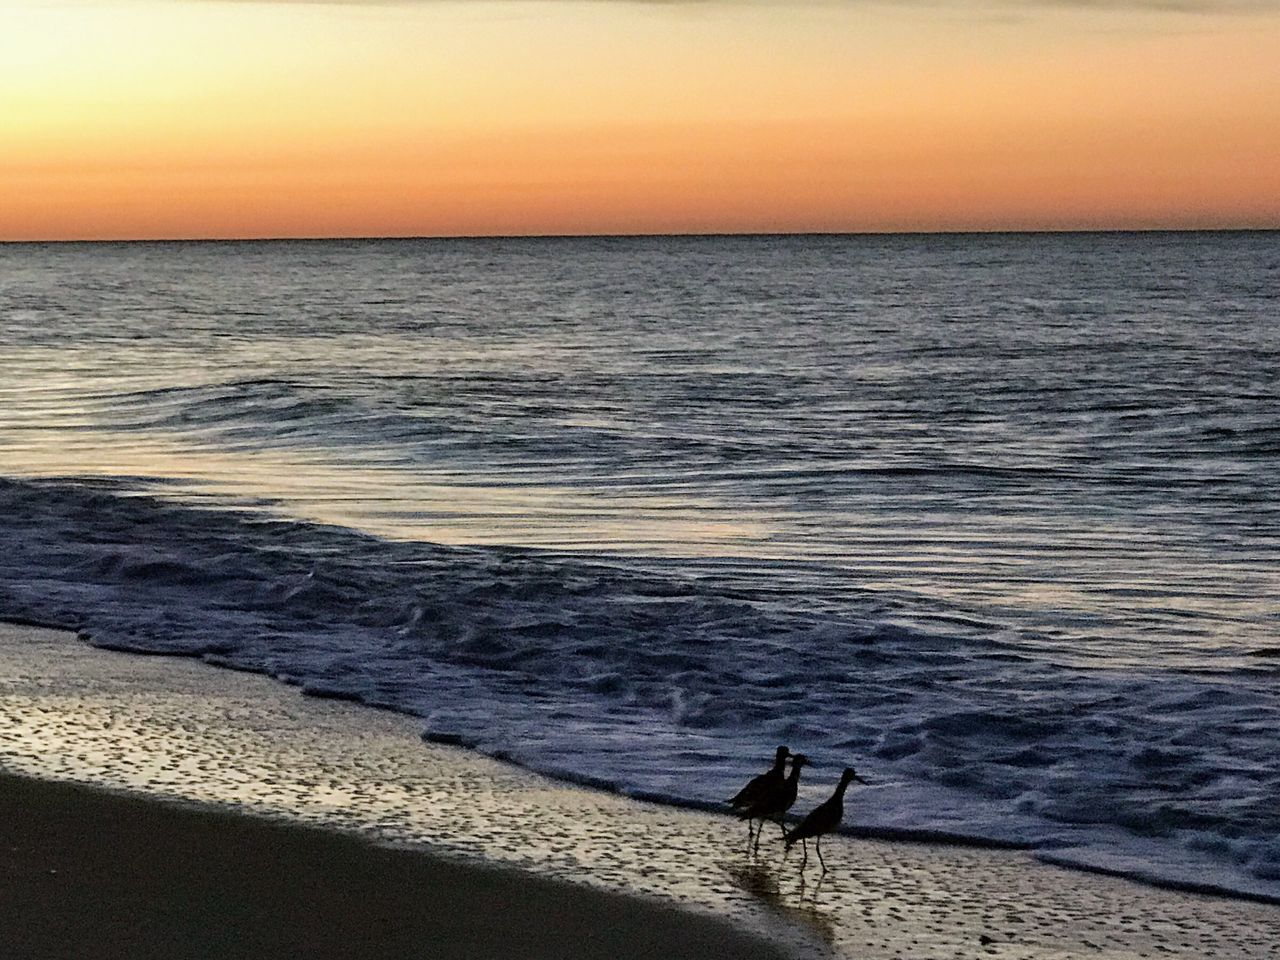 Sea Sunset Nature Water Horizon Over Water Scenics Beauty In Nature Tranquil Scene Beach Tranquility Idyllic Outdoors One Person Real People Sky Standing Full Length Fishing Pole Day One Man Only